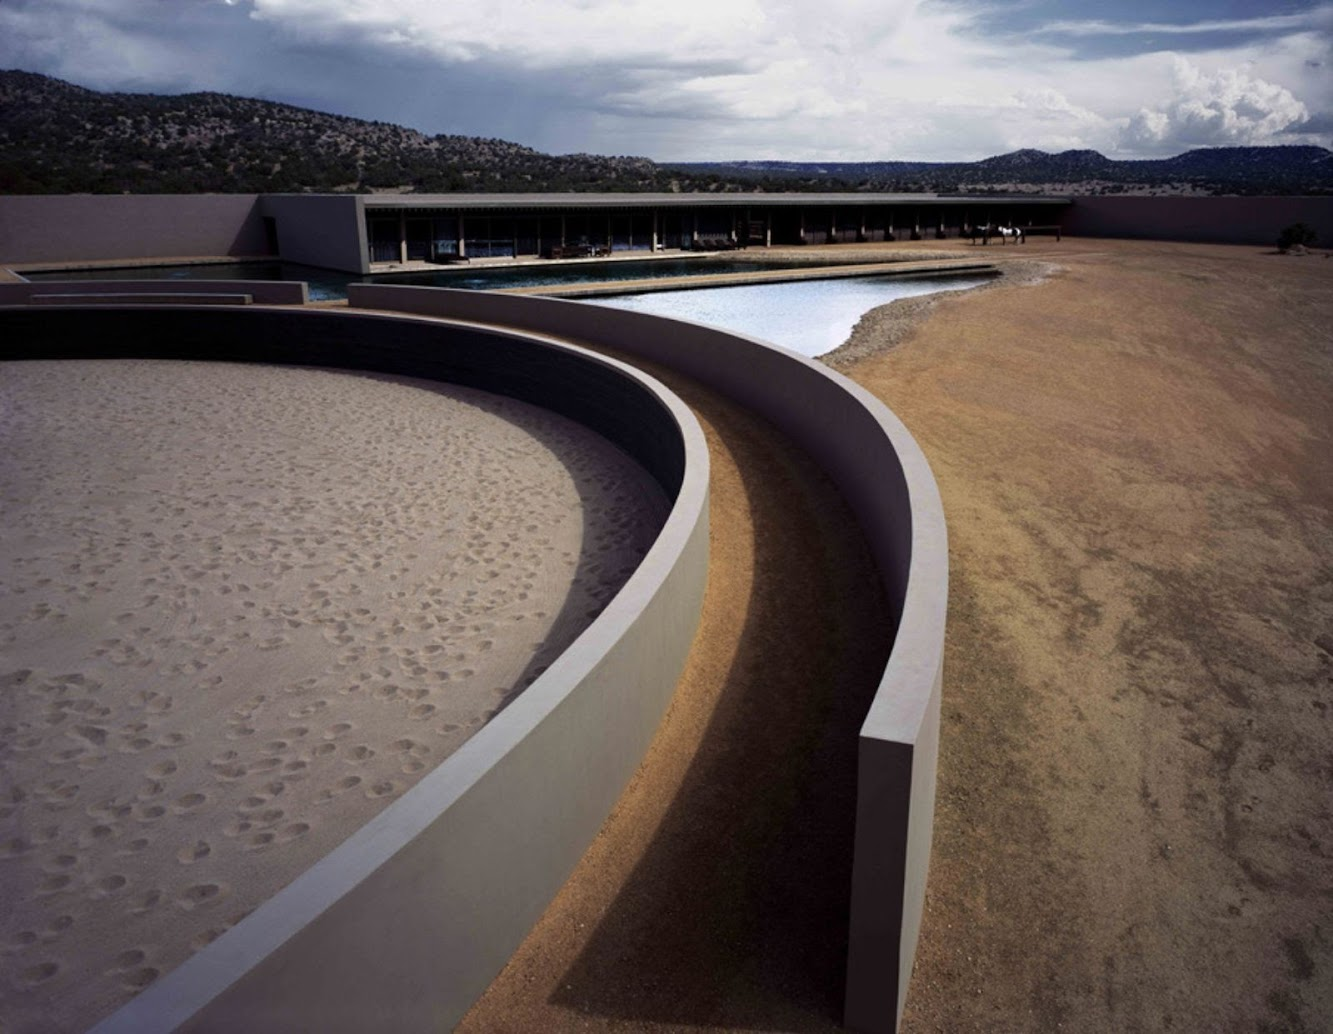 Santa Fe, Nuovo Messico, Stati Uniti: Tom Ford'S Ranch by Tadao Ando